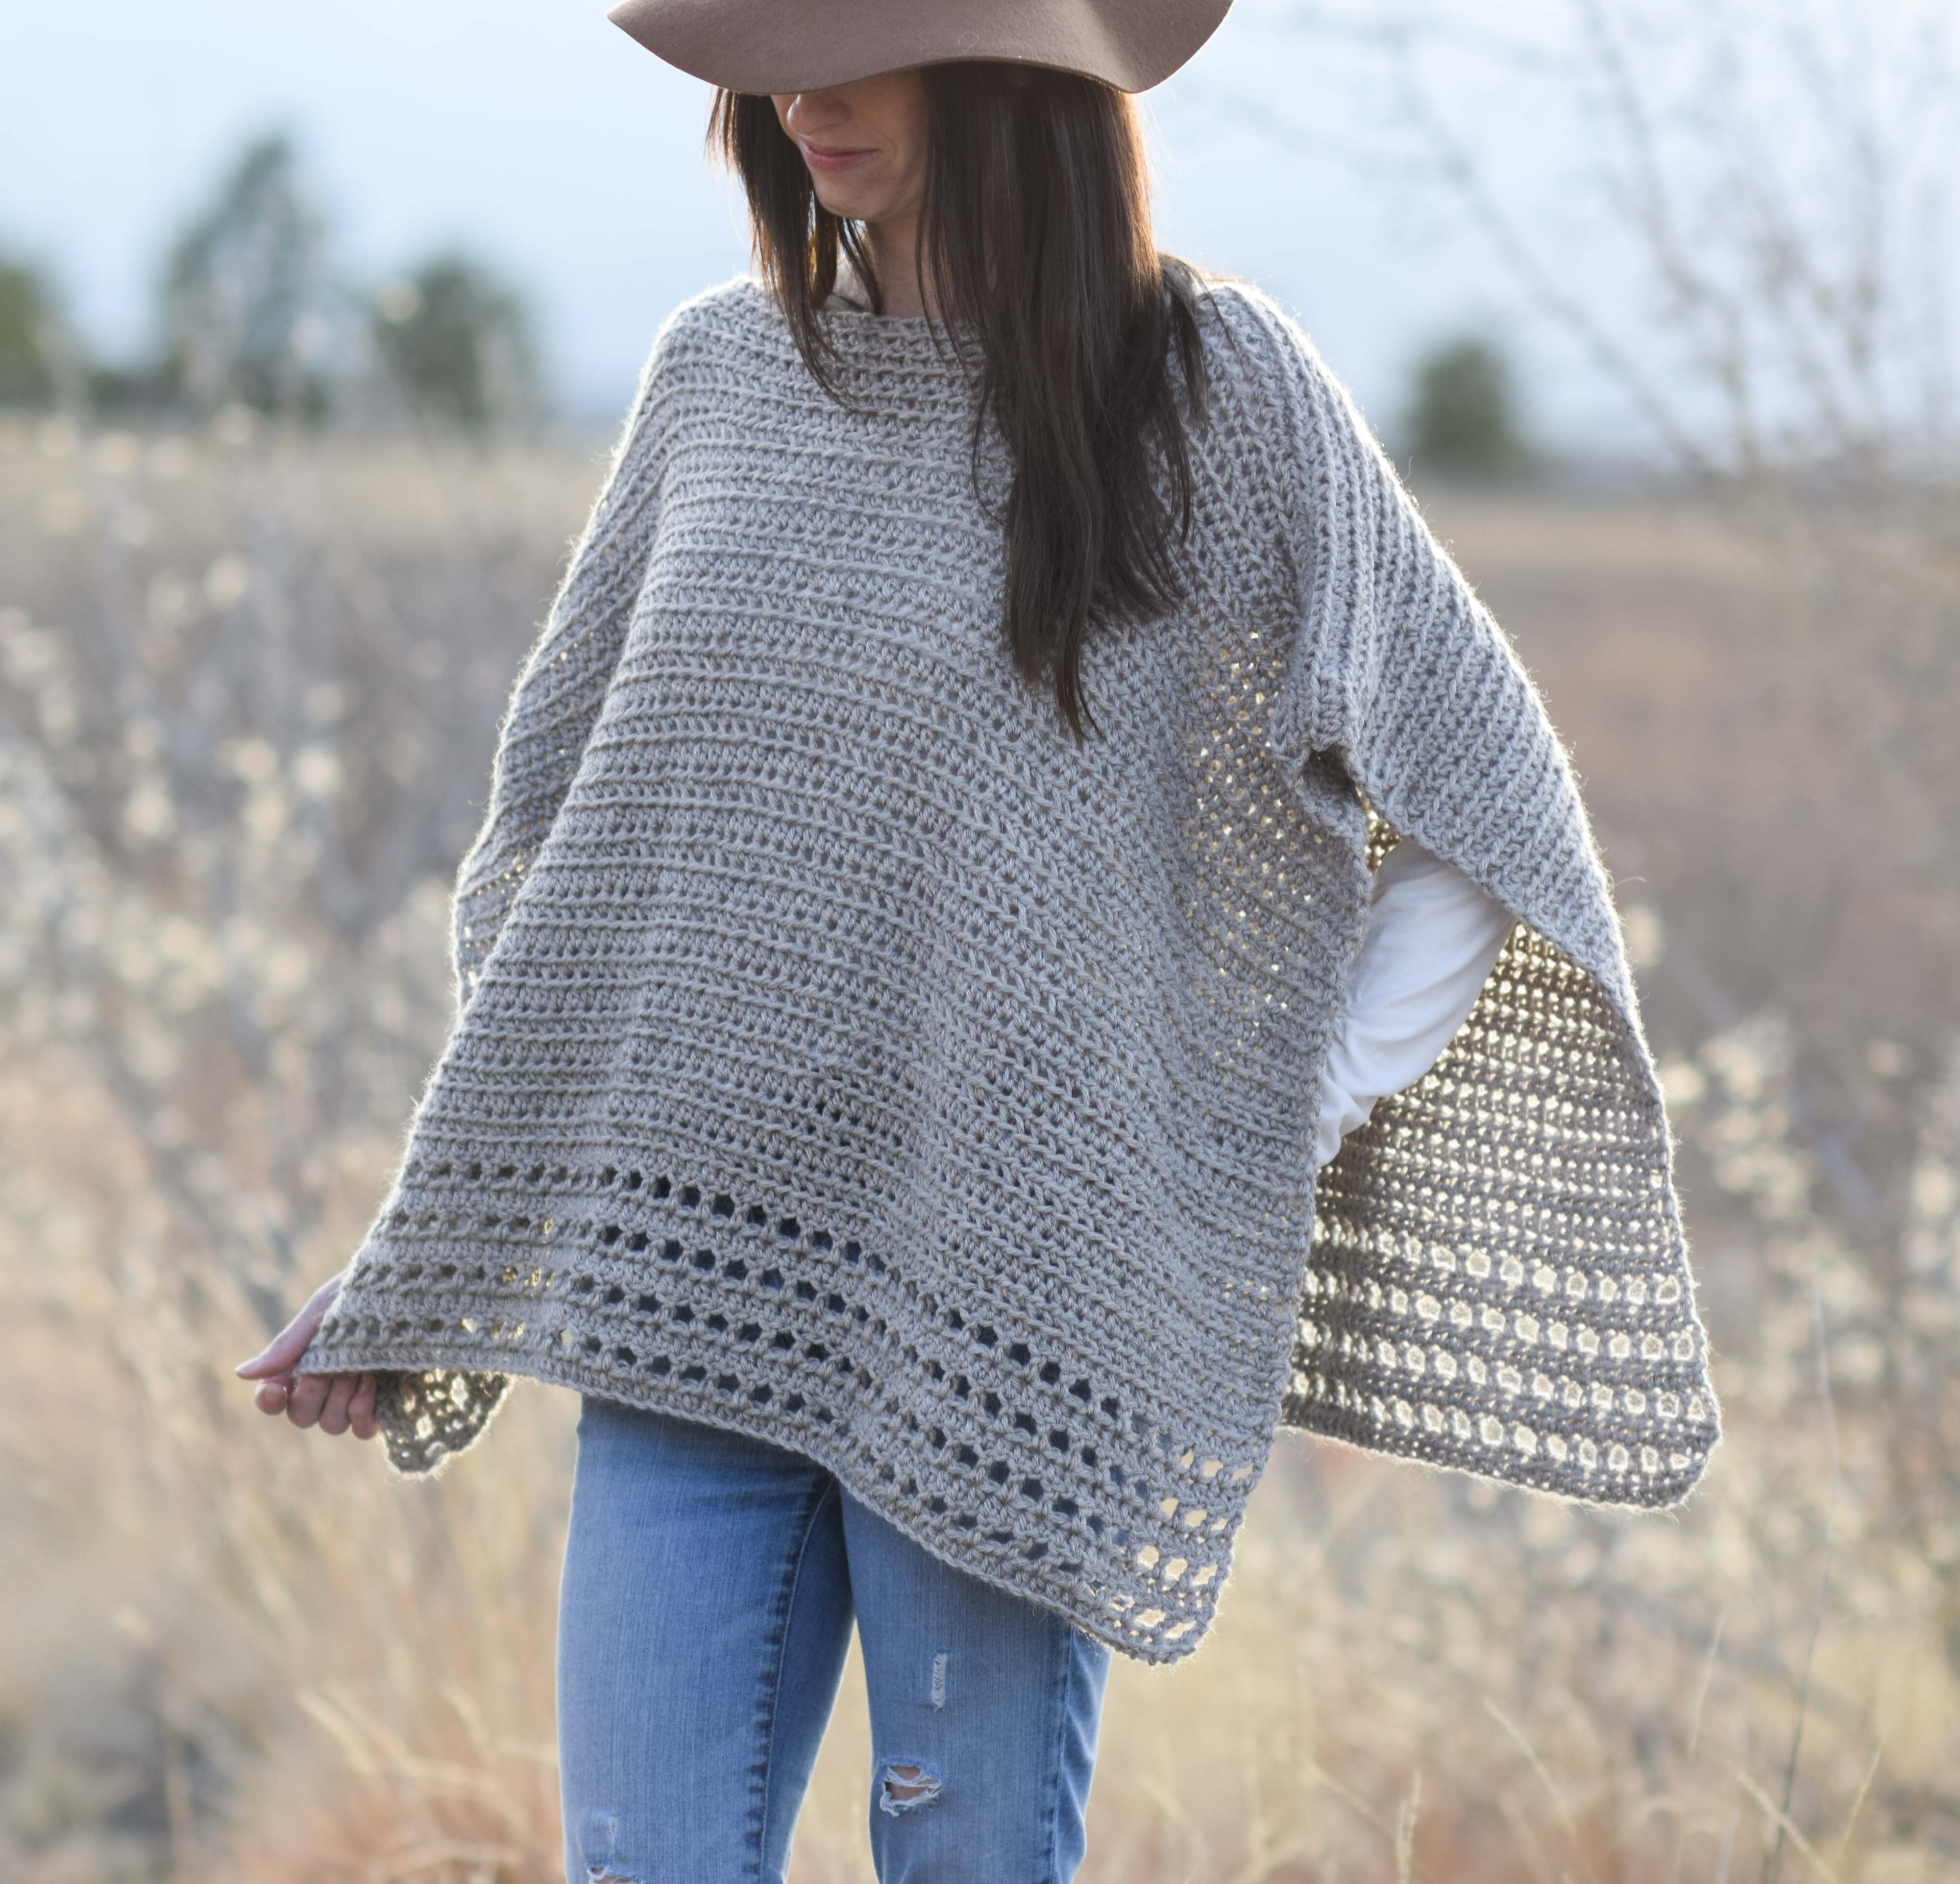 Crochet Poncho Pattern New Light Alpaca Poncho Crochet Pattern – Mama In A Stitch Of Beautiful 41 Ideas Crochet Poncho Pattern